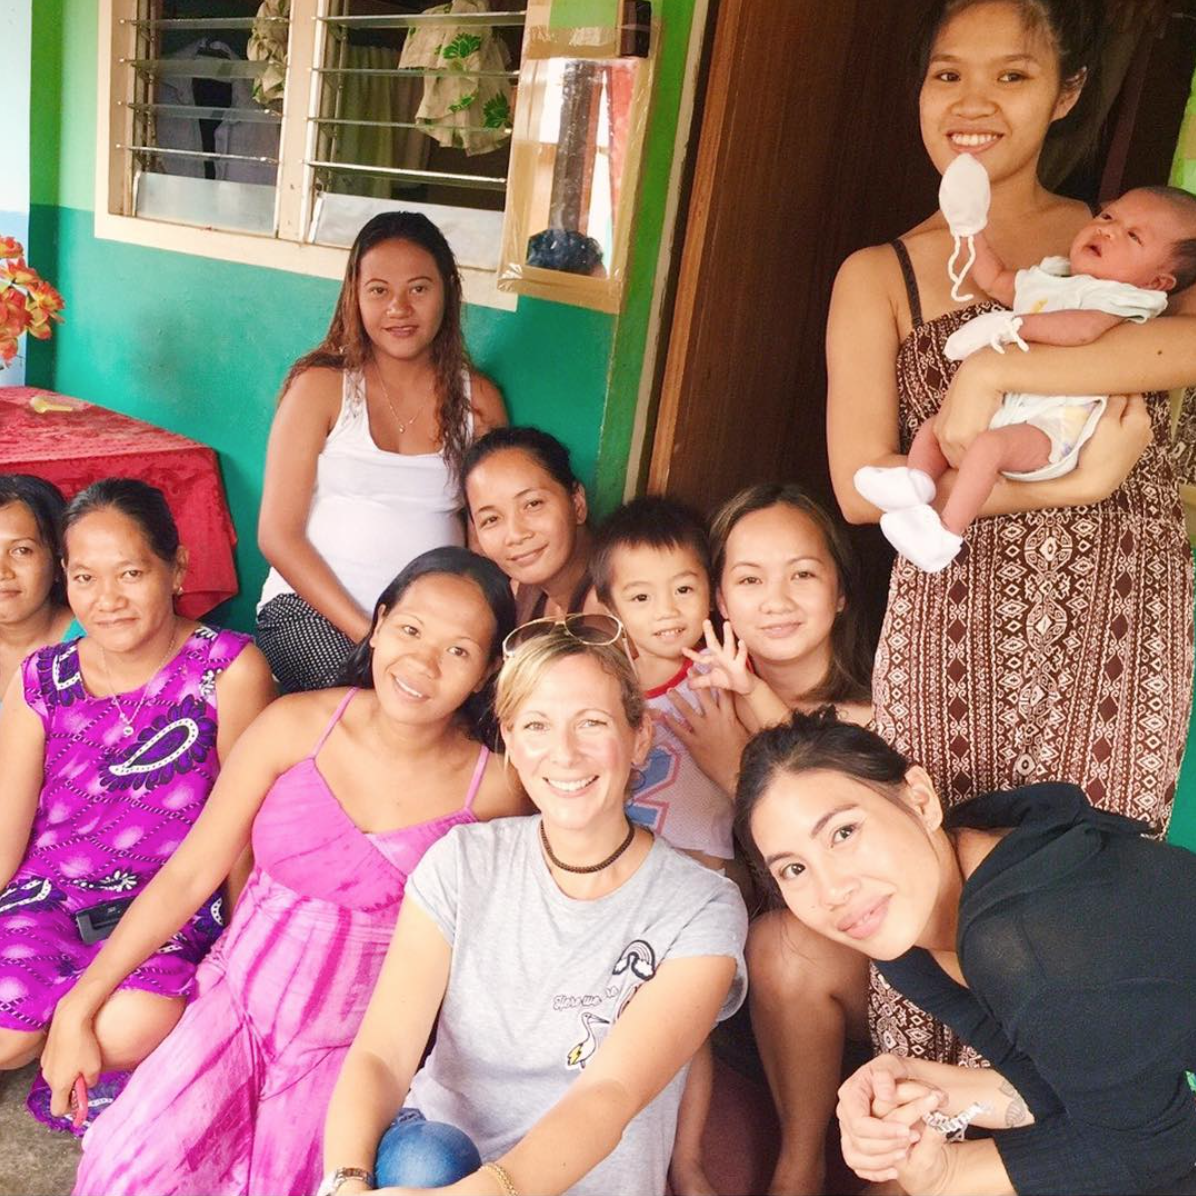 Clare works with talented artisans in The Philippines including the women from the Tacloban area. (Image: Clare Hynes)